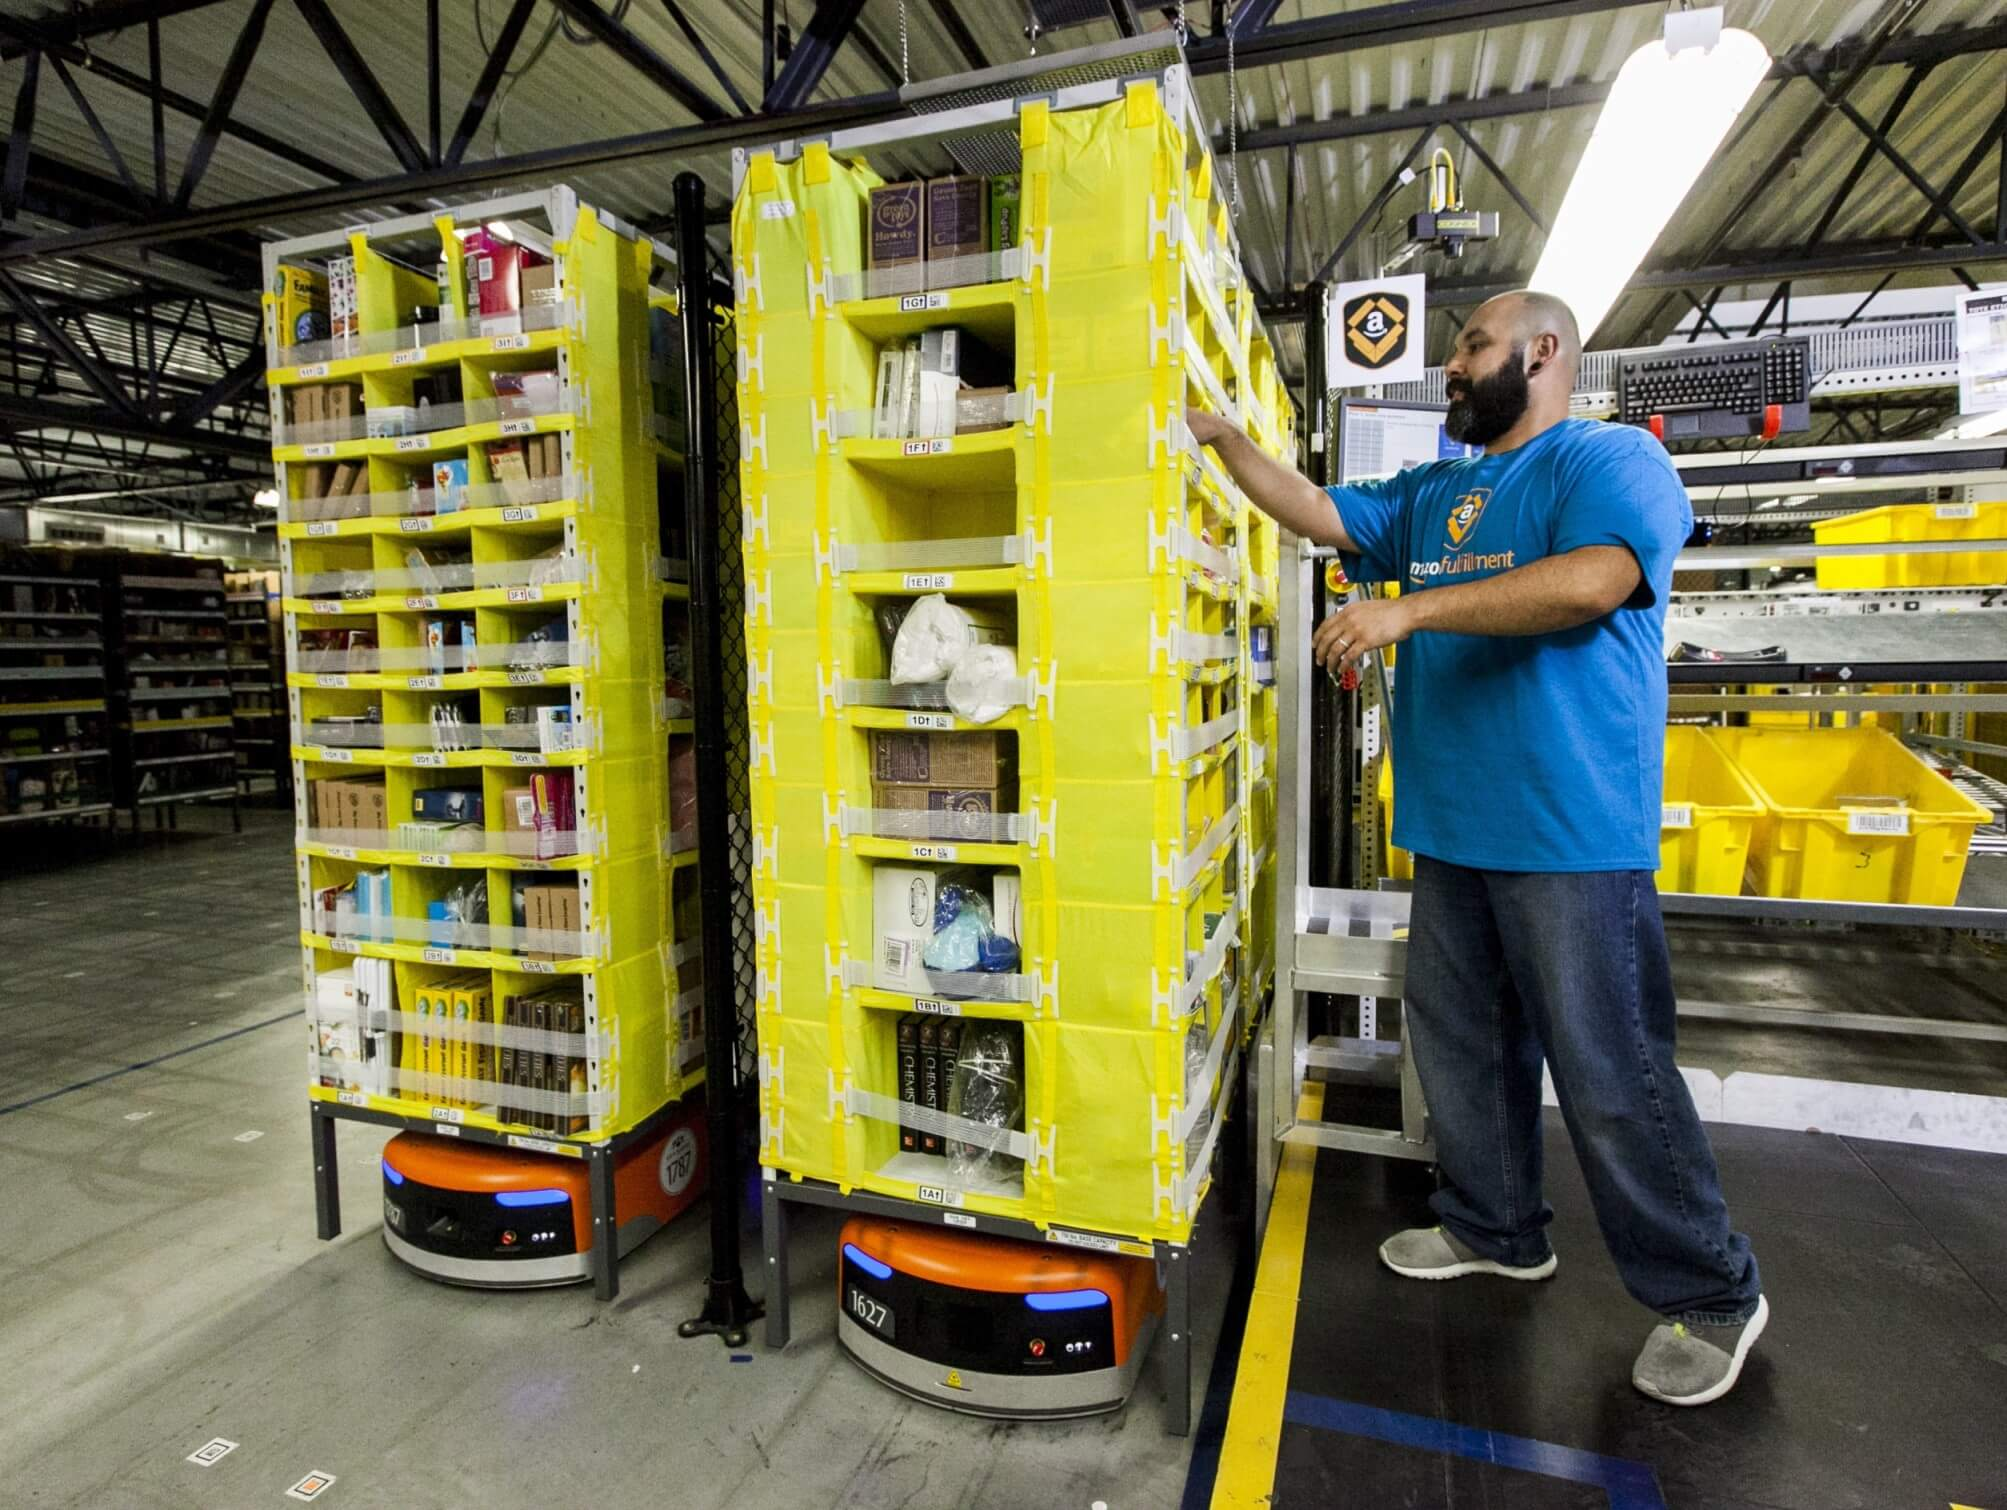 Amazon spends $700M to retrain 100,000 employees affected by automation